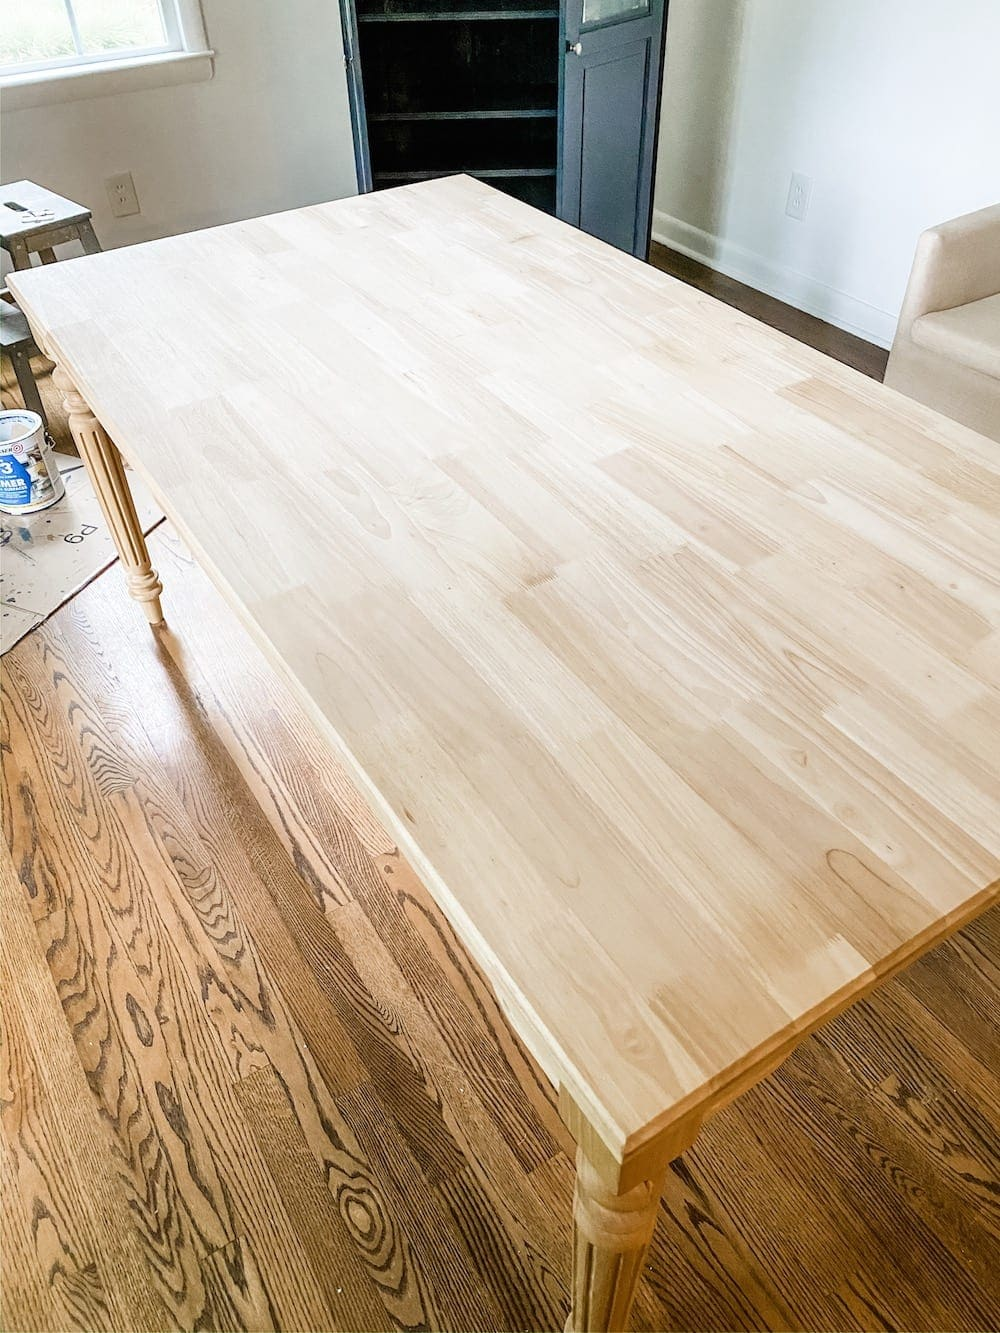 A budget-friendly option for customizing furniture to work in any space using unfinished, solid wood pre-built pieces & staining an office work table.